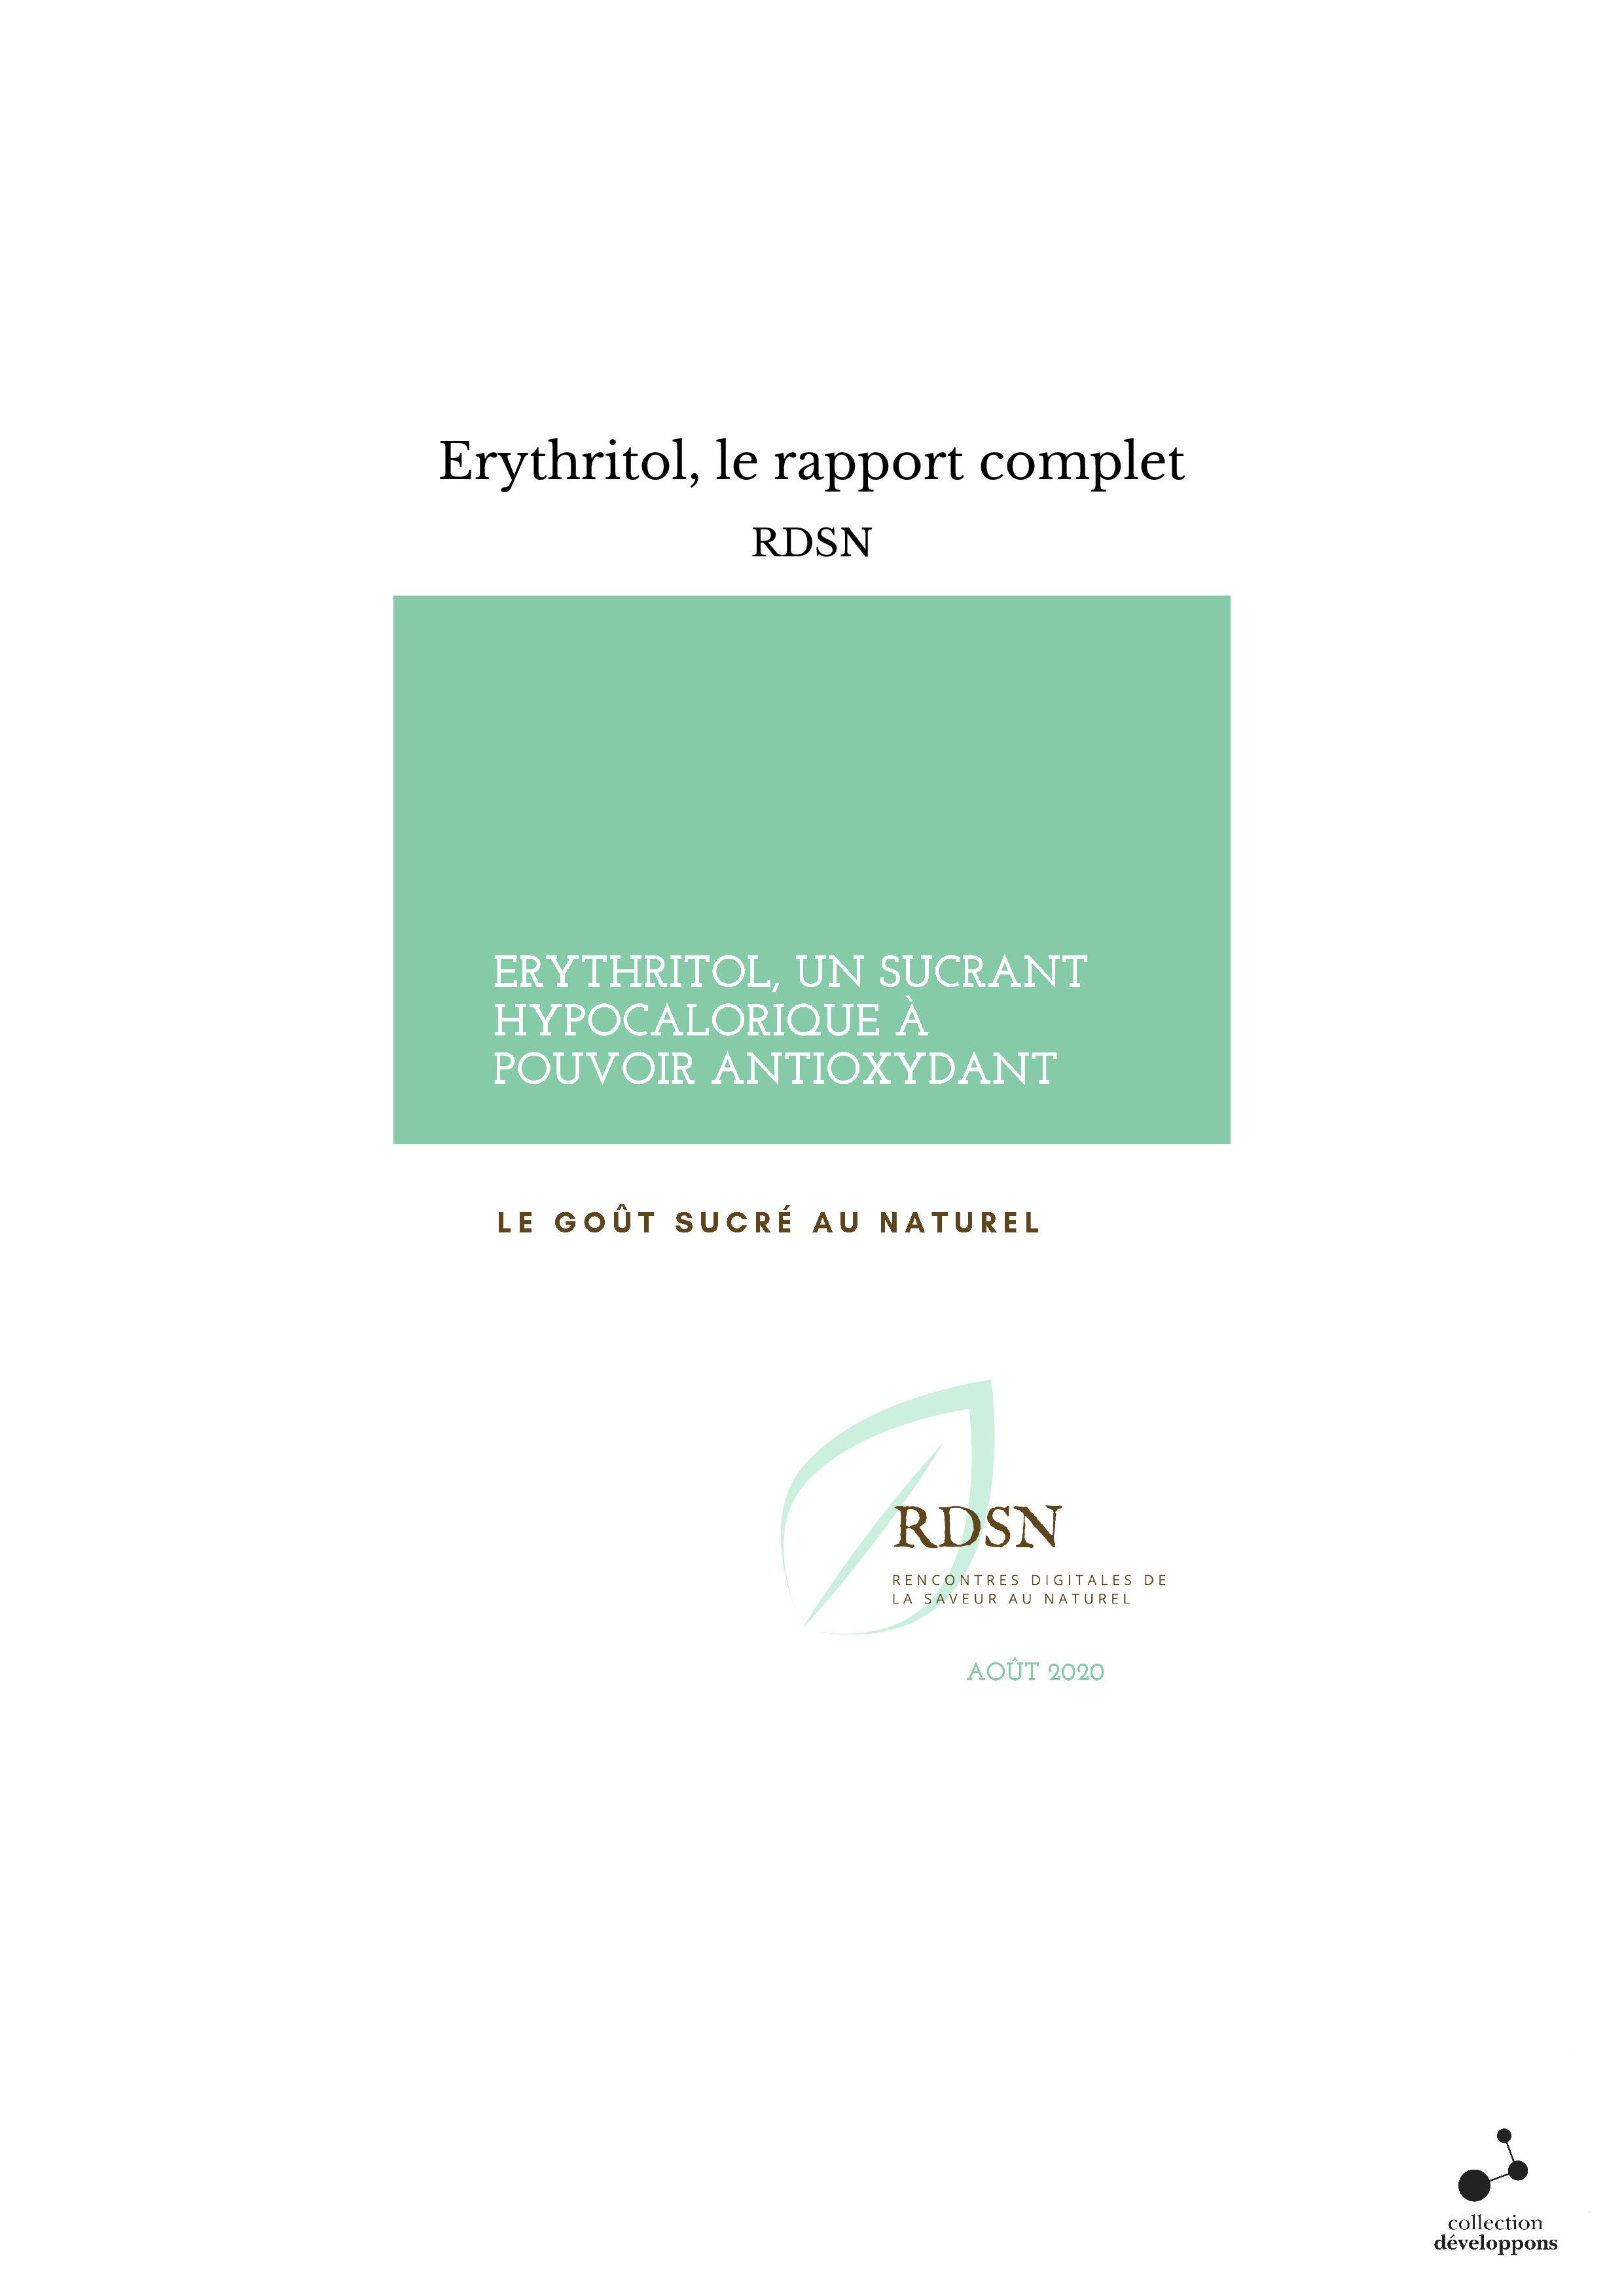 Erythritol, le rapport complet